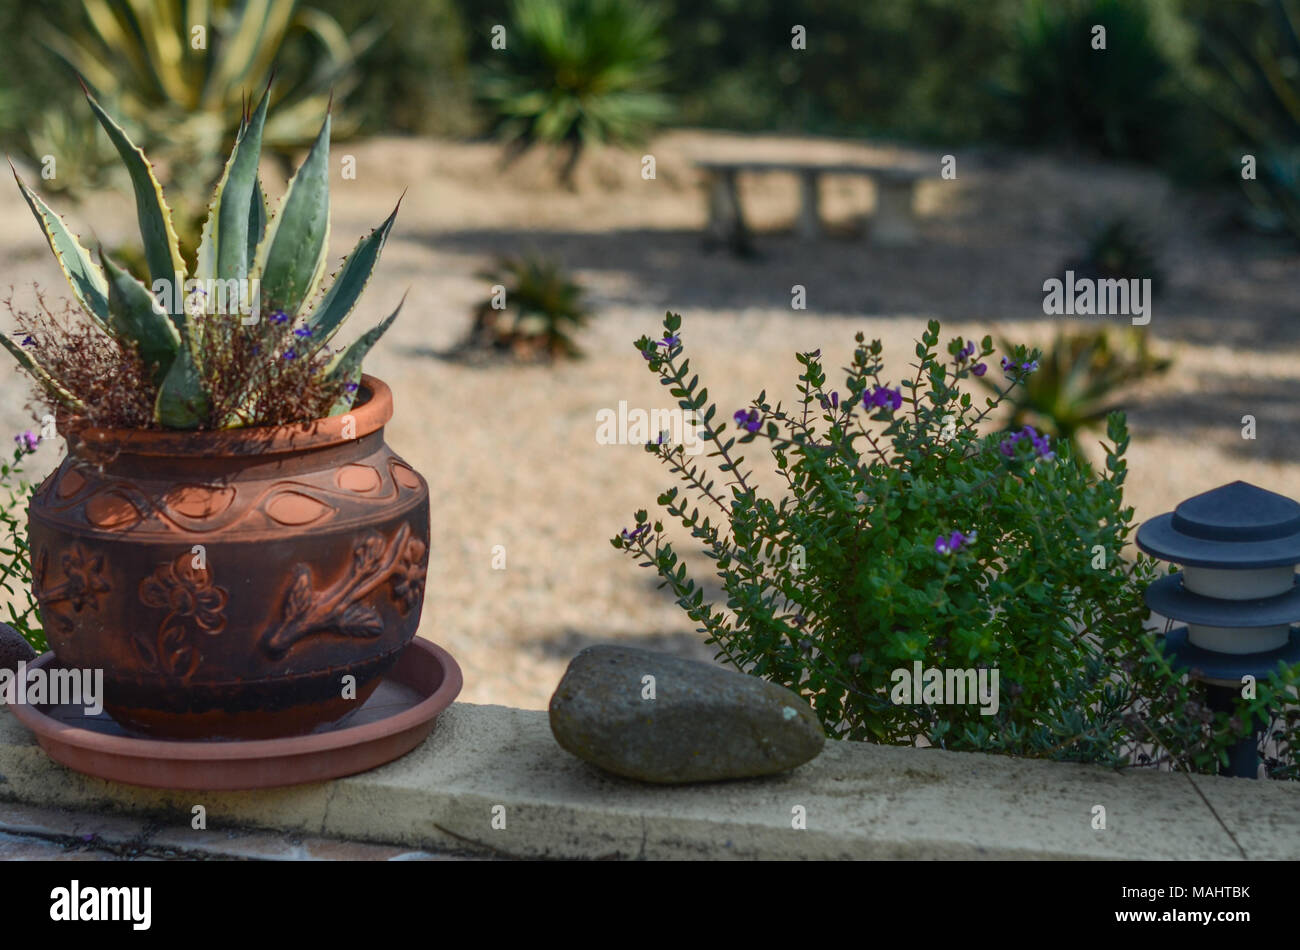 Spanish flowers and pot plants in a garden high up in the Girona hills of spain, yucca plants - Stock Image